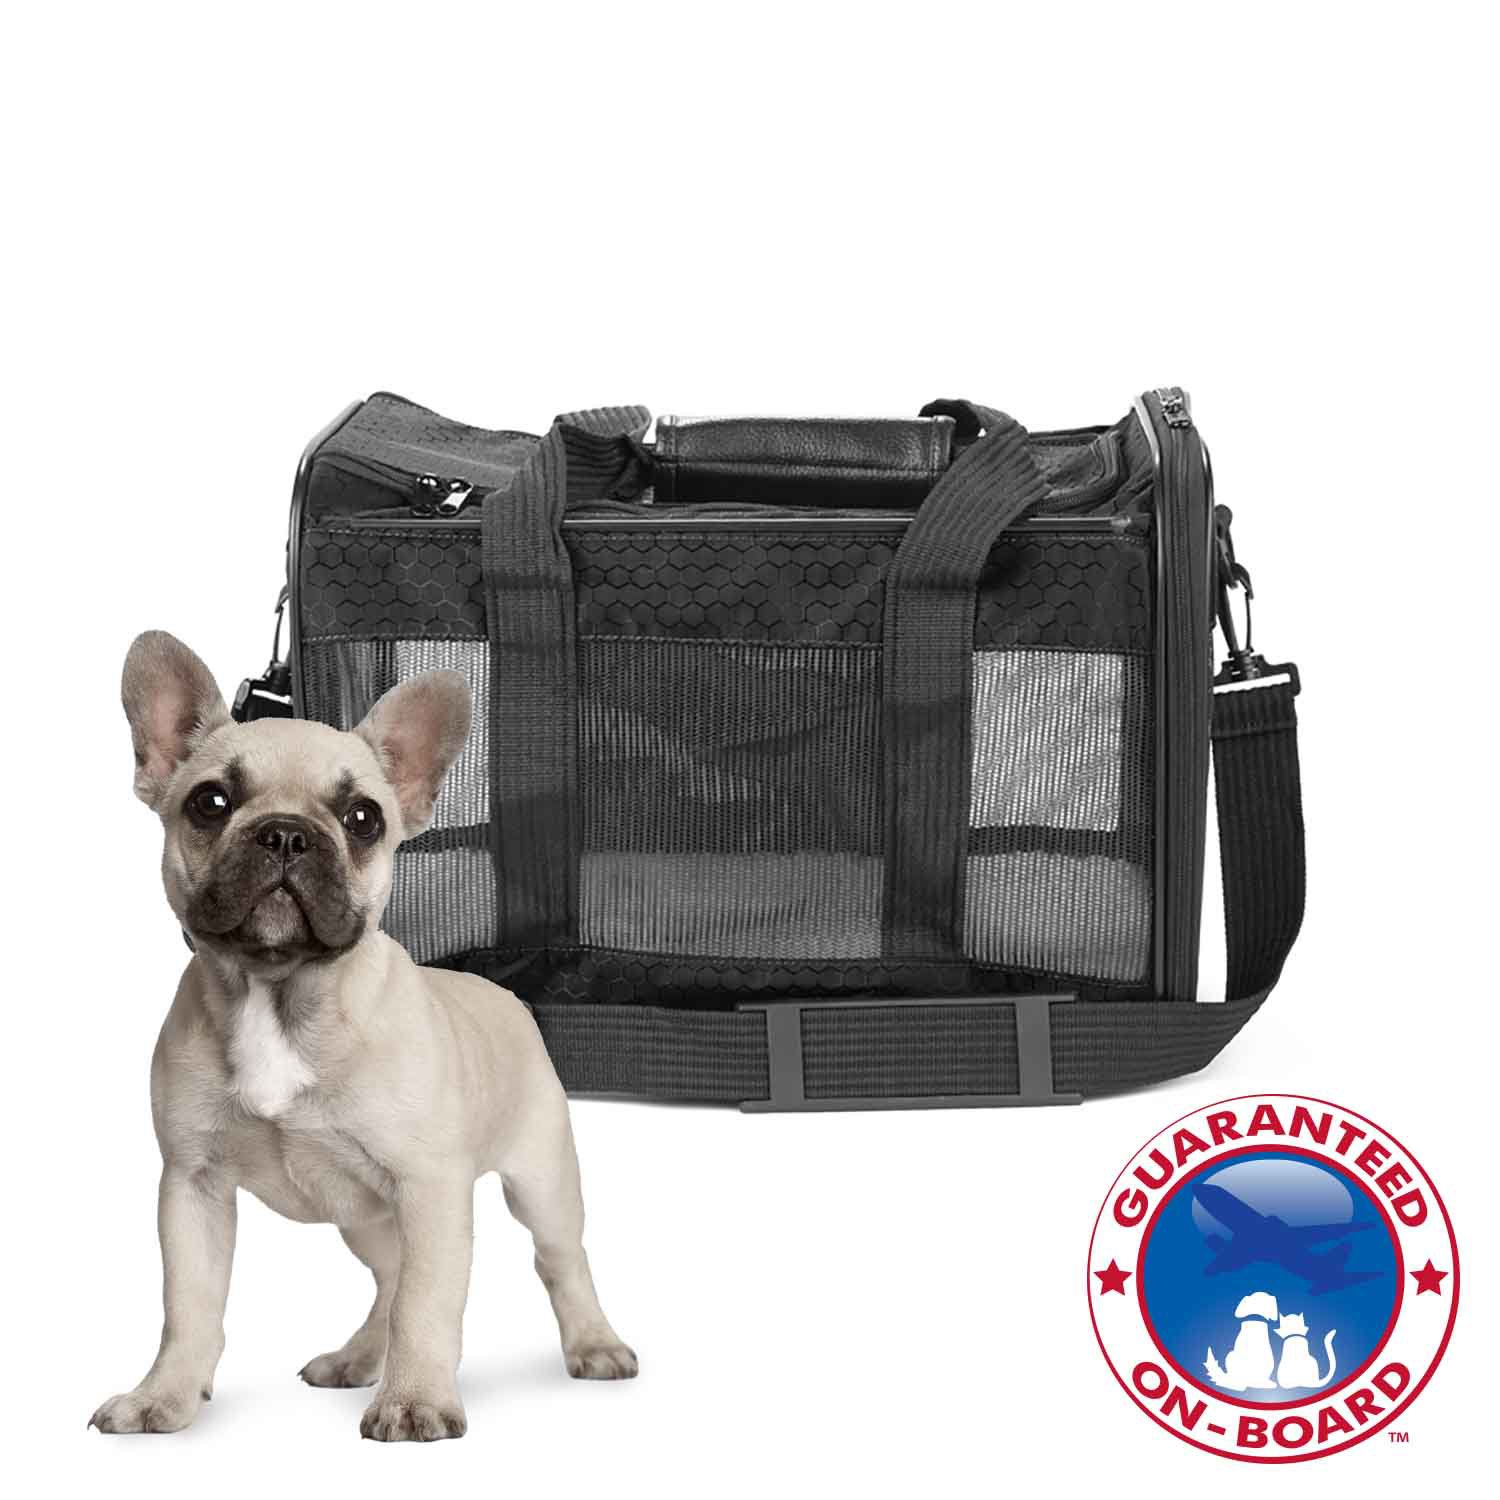 Large Dog Carrier For Sale